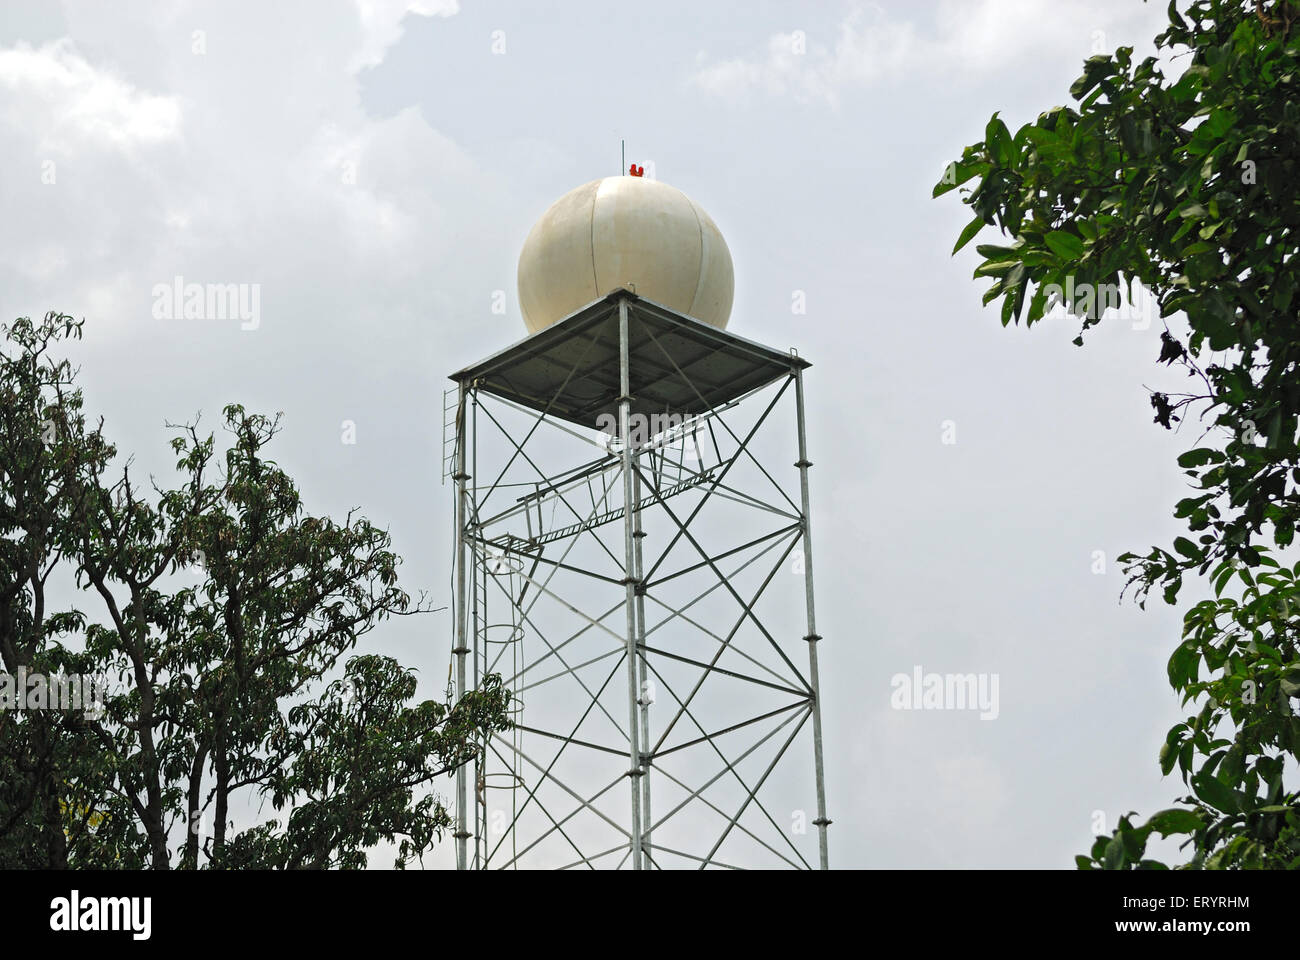 Mini air traffic control radar setup for cloud seeding ; Vaitarana ; Mumbai Bombay ; Maharashtra ; India 10 September - Stock Image